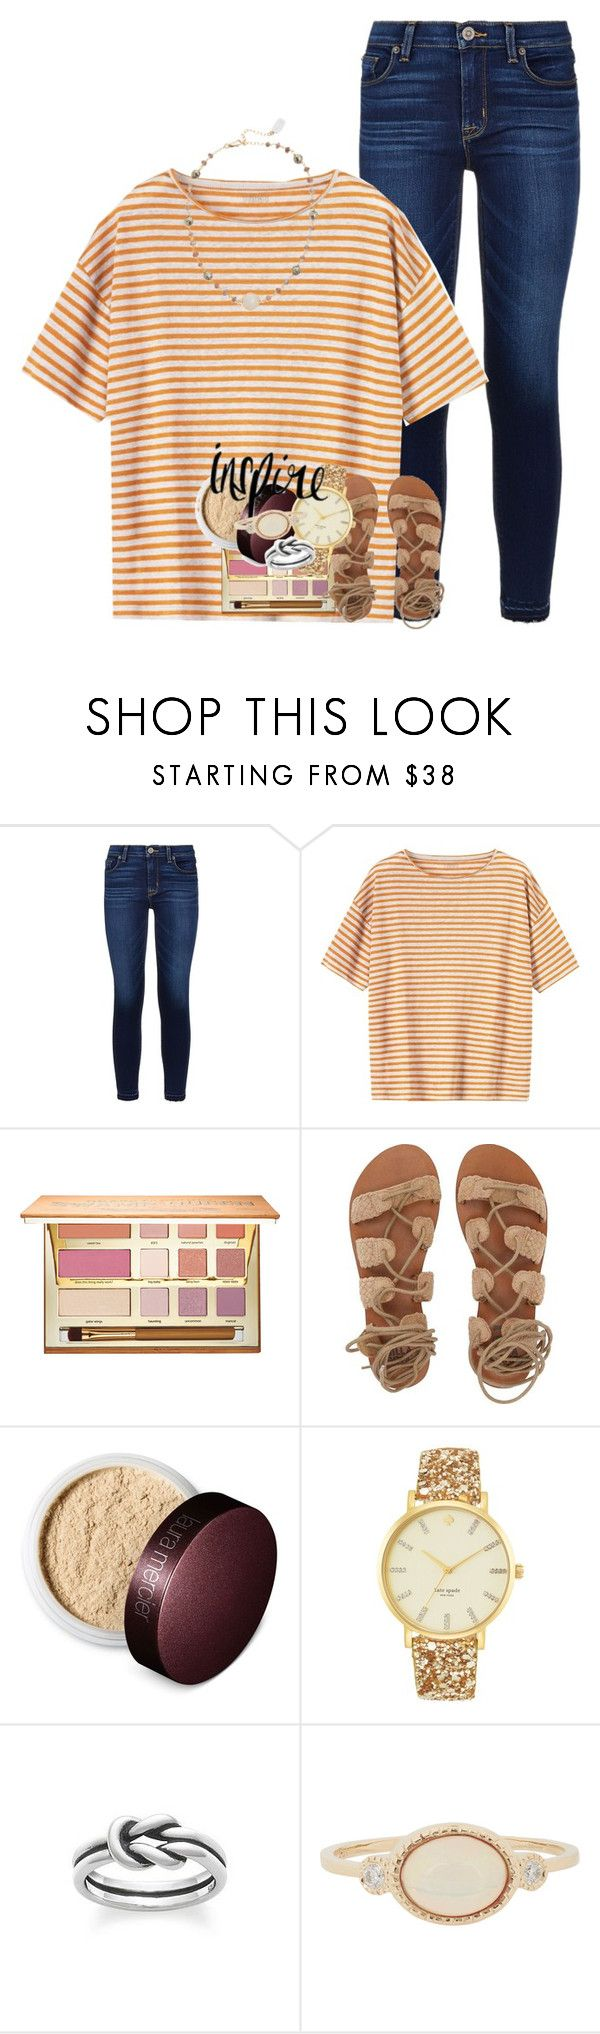 """""""surprise surprise your girl is watching grey's again (:"""" by emilyandella ❤ liked on Polyvore featuring Hudson, Toast, tarte, Billabong, Laura Mercier, Kate Spade, Avery, Jennie Kwon and Ela Rae"""